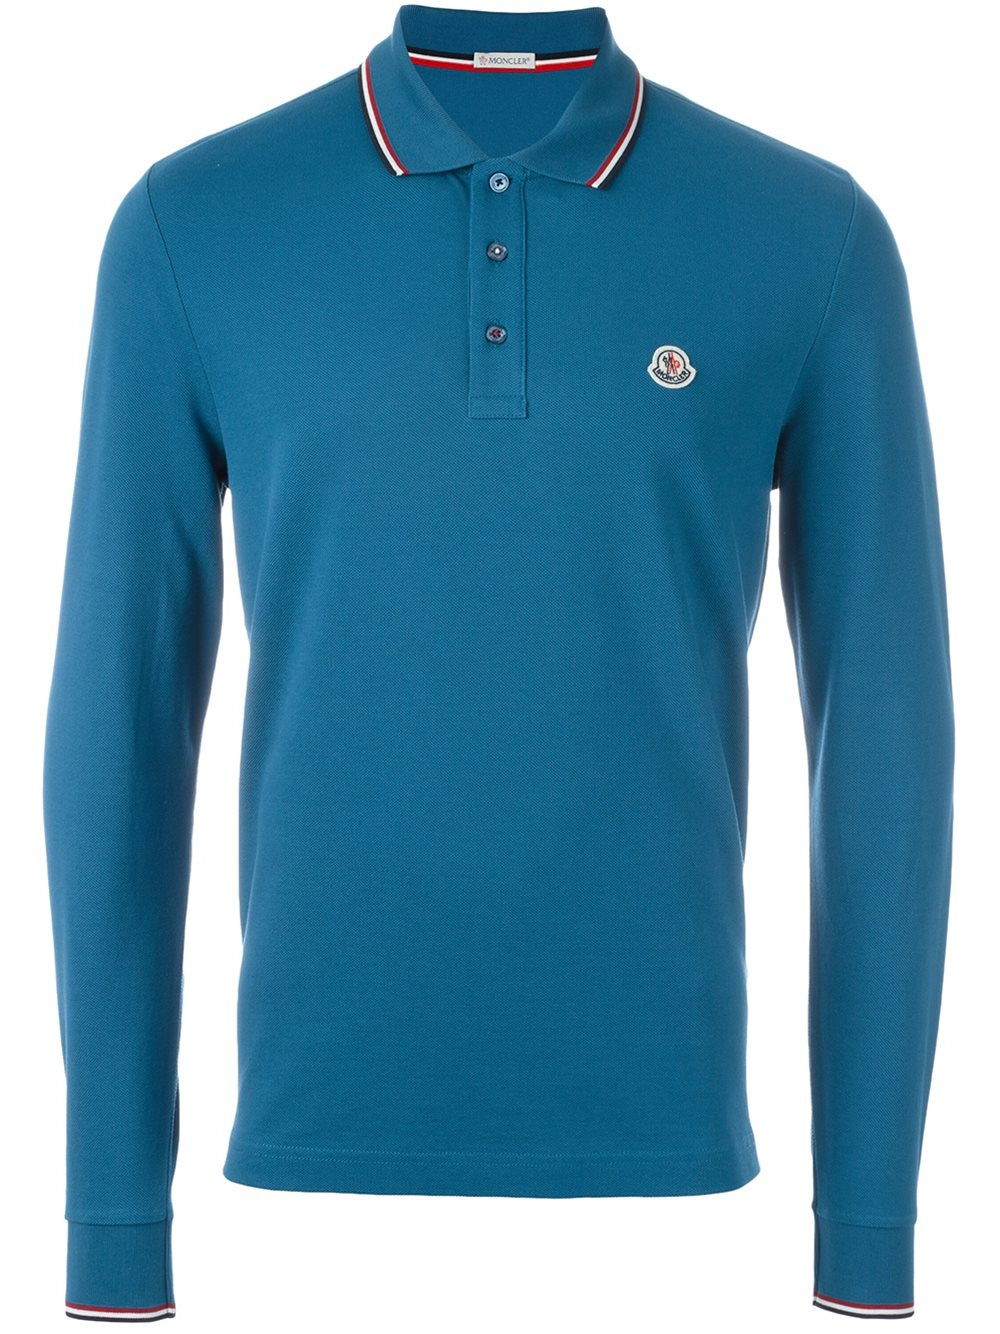 moncler long sleeve logo polo shirt in blue for men lyst. Black Bedroom Furniture Sets. Home Design Ideas